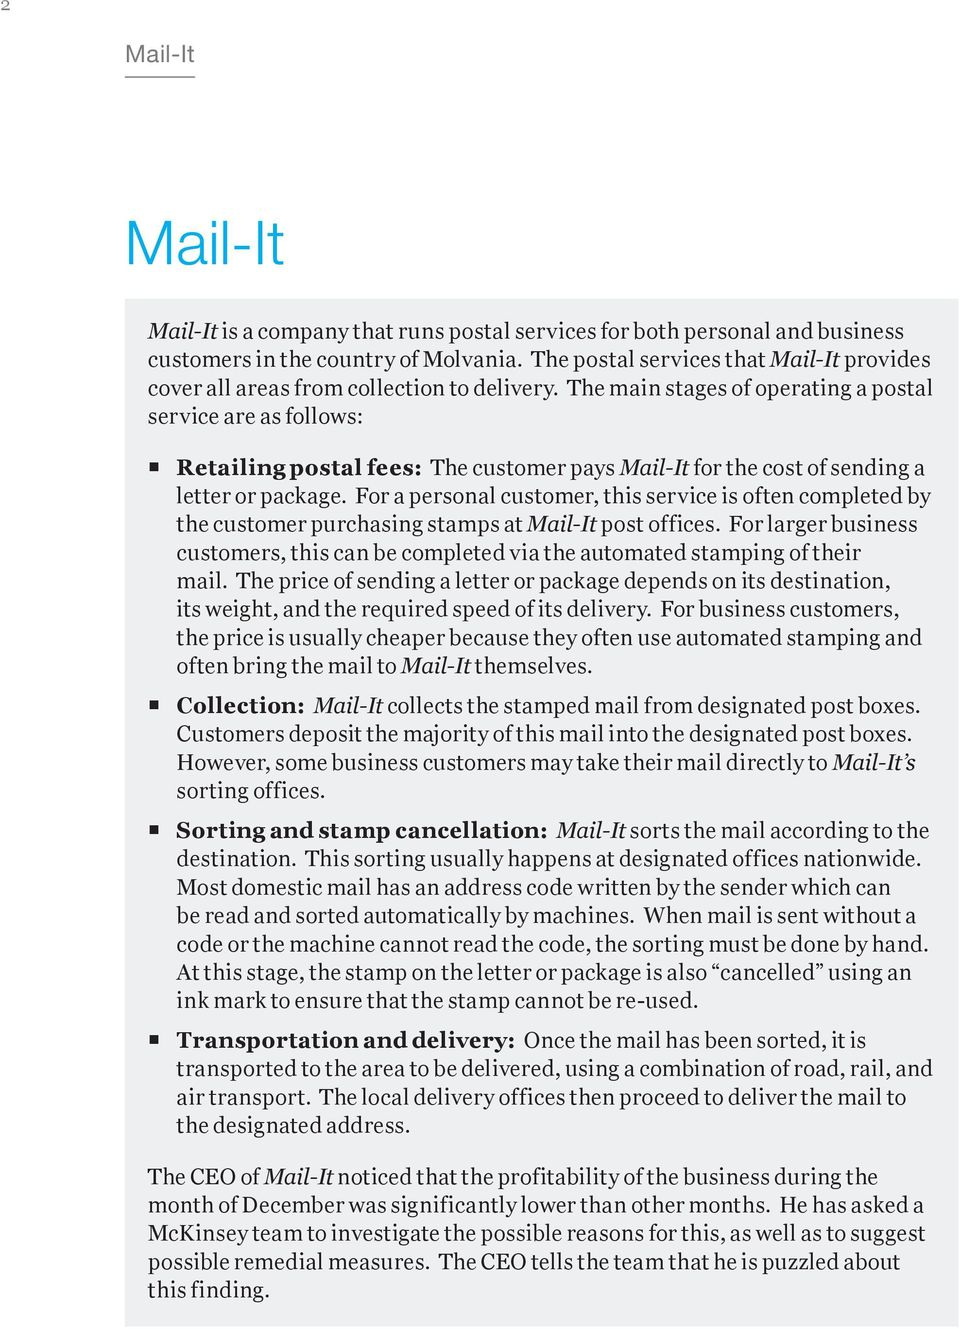 The main stages of operating a postal service are as follows: Retailing postal fees: The customer pays Mail-It for the cost of sending a letter or package.